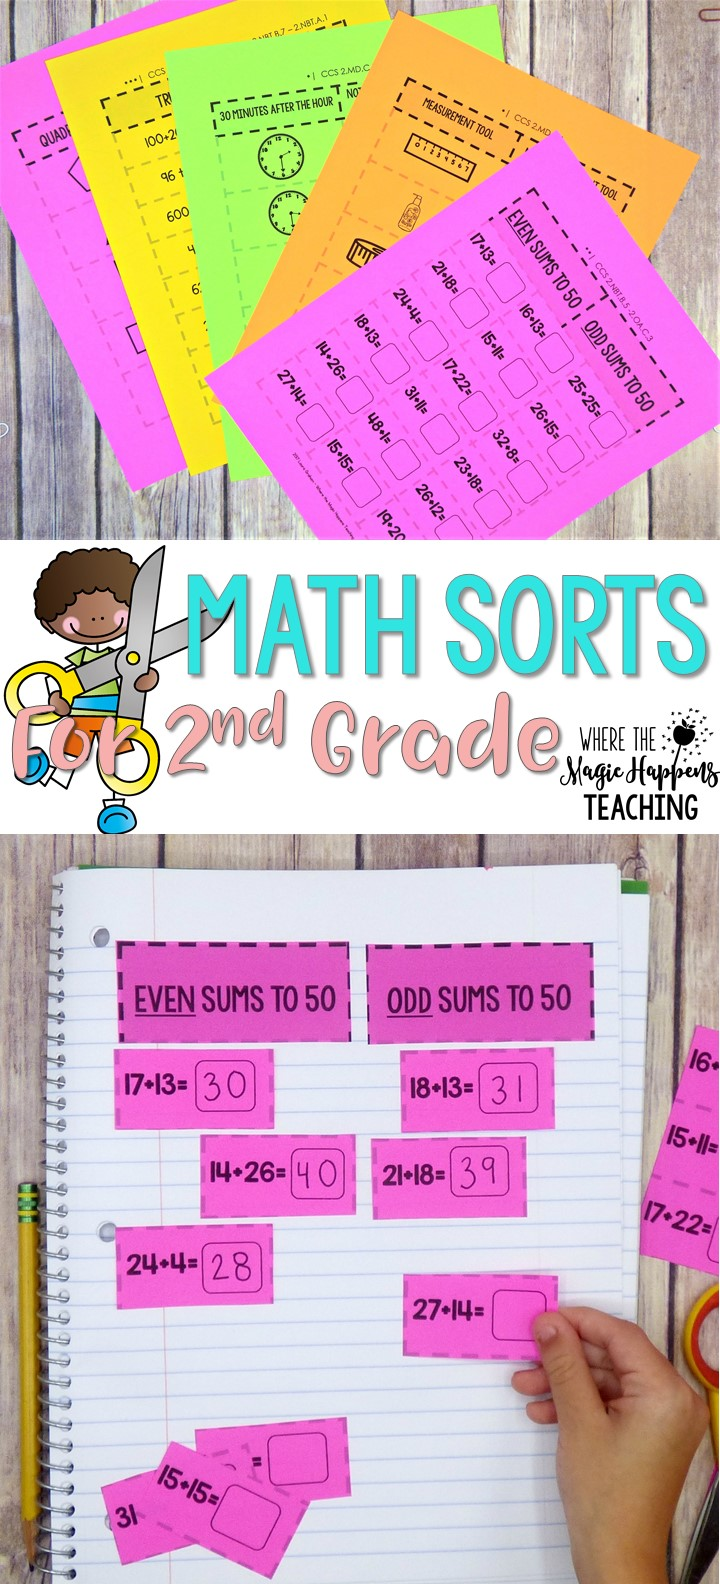 hight resolution of Math Sorts for 2nd Grade - Where the Magic Happens